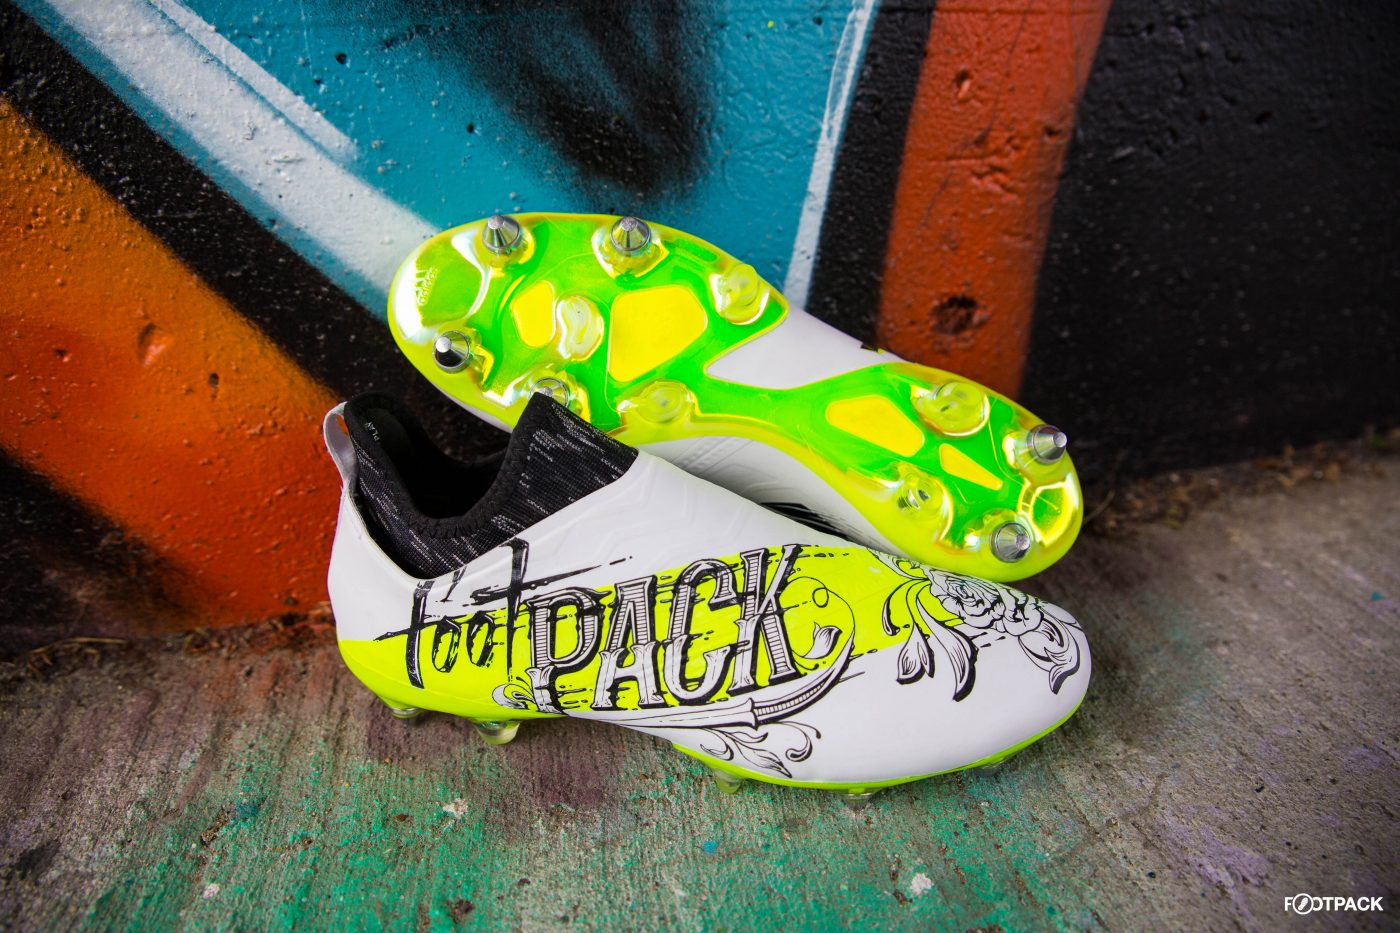 skin-glitch-footpack-adidas-co-creation-21